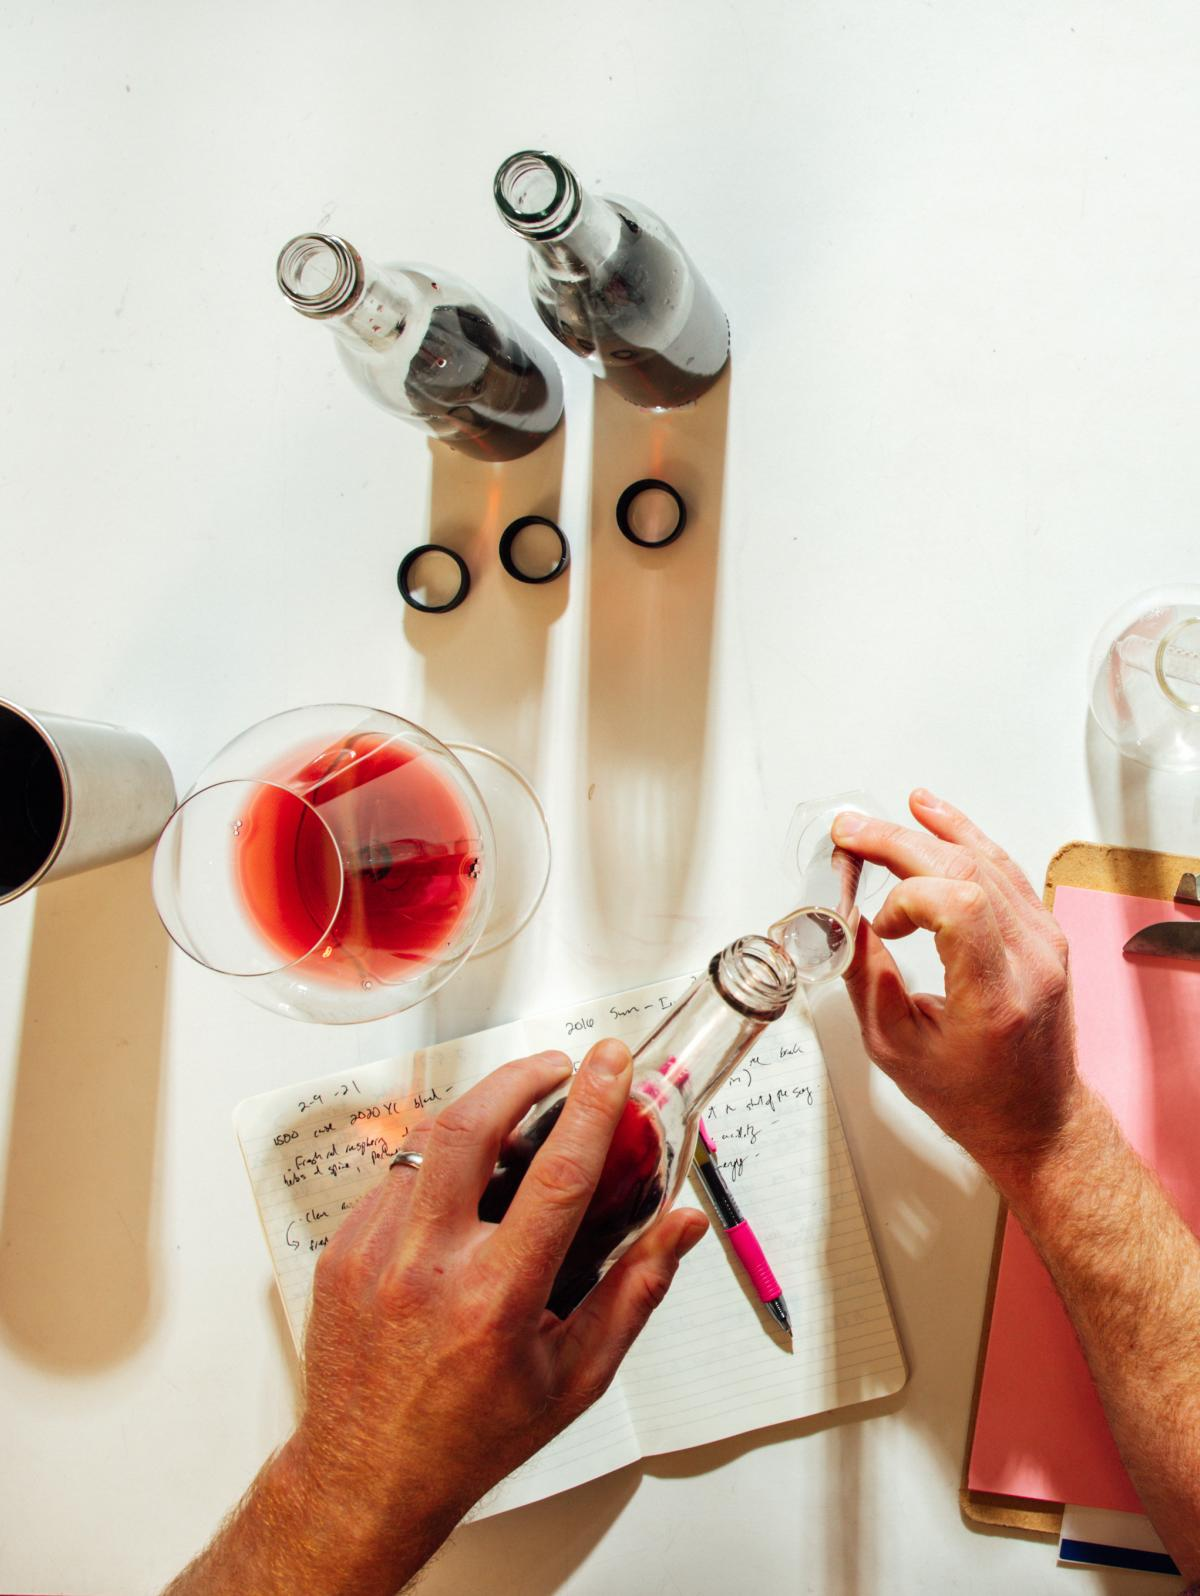 Overhead shot of a person blending wine in a wine lab